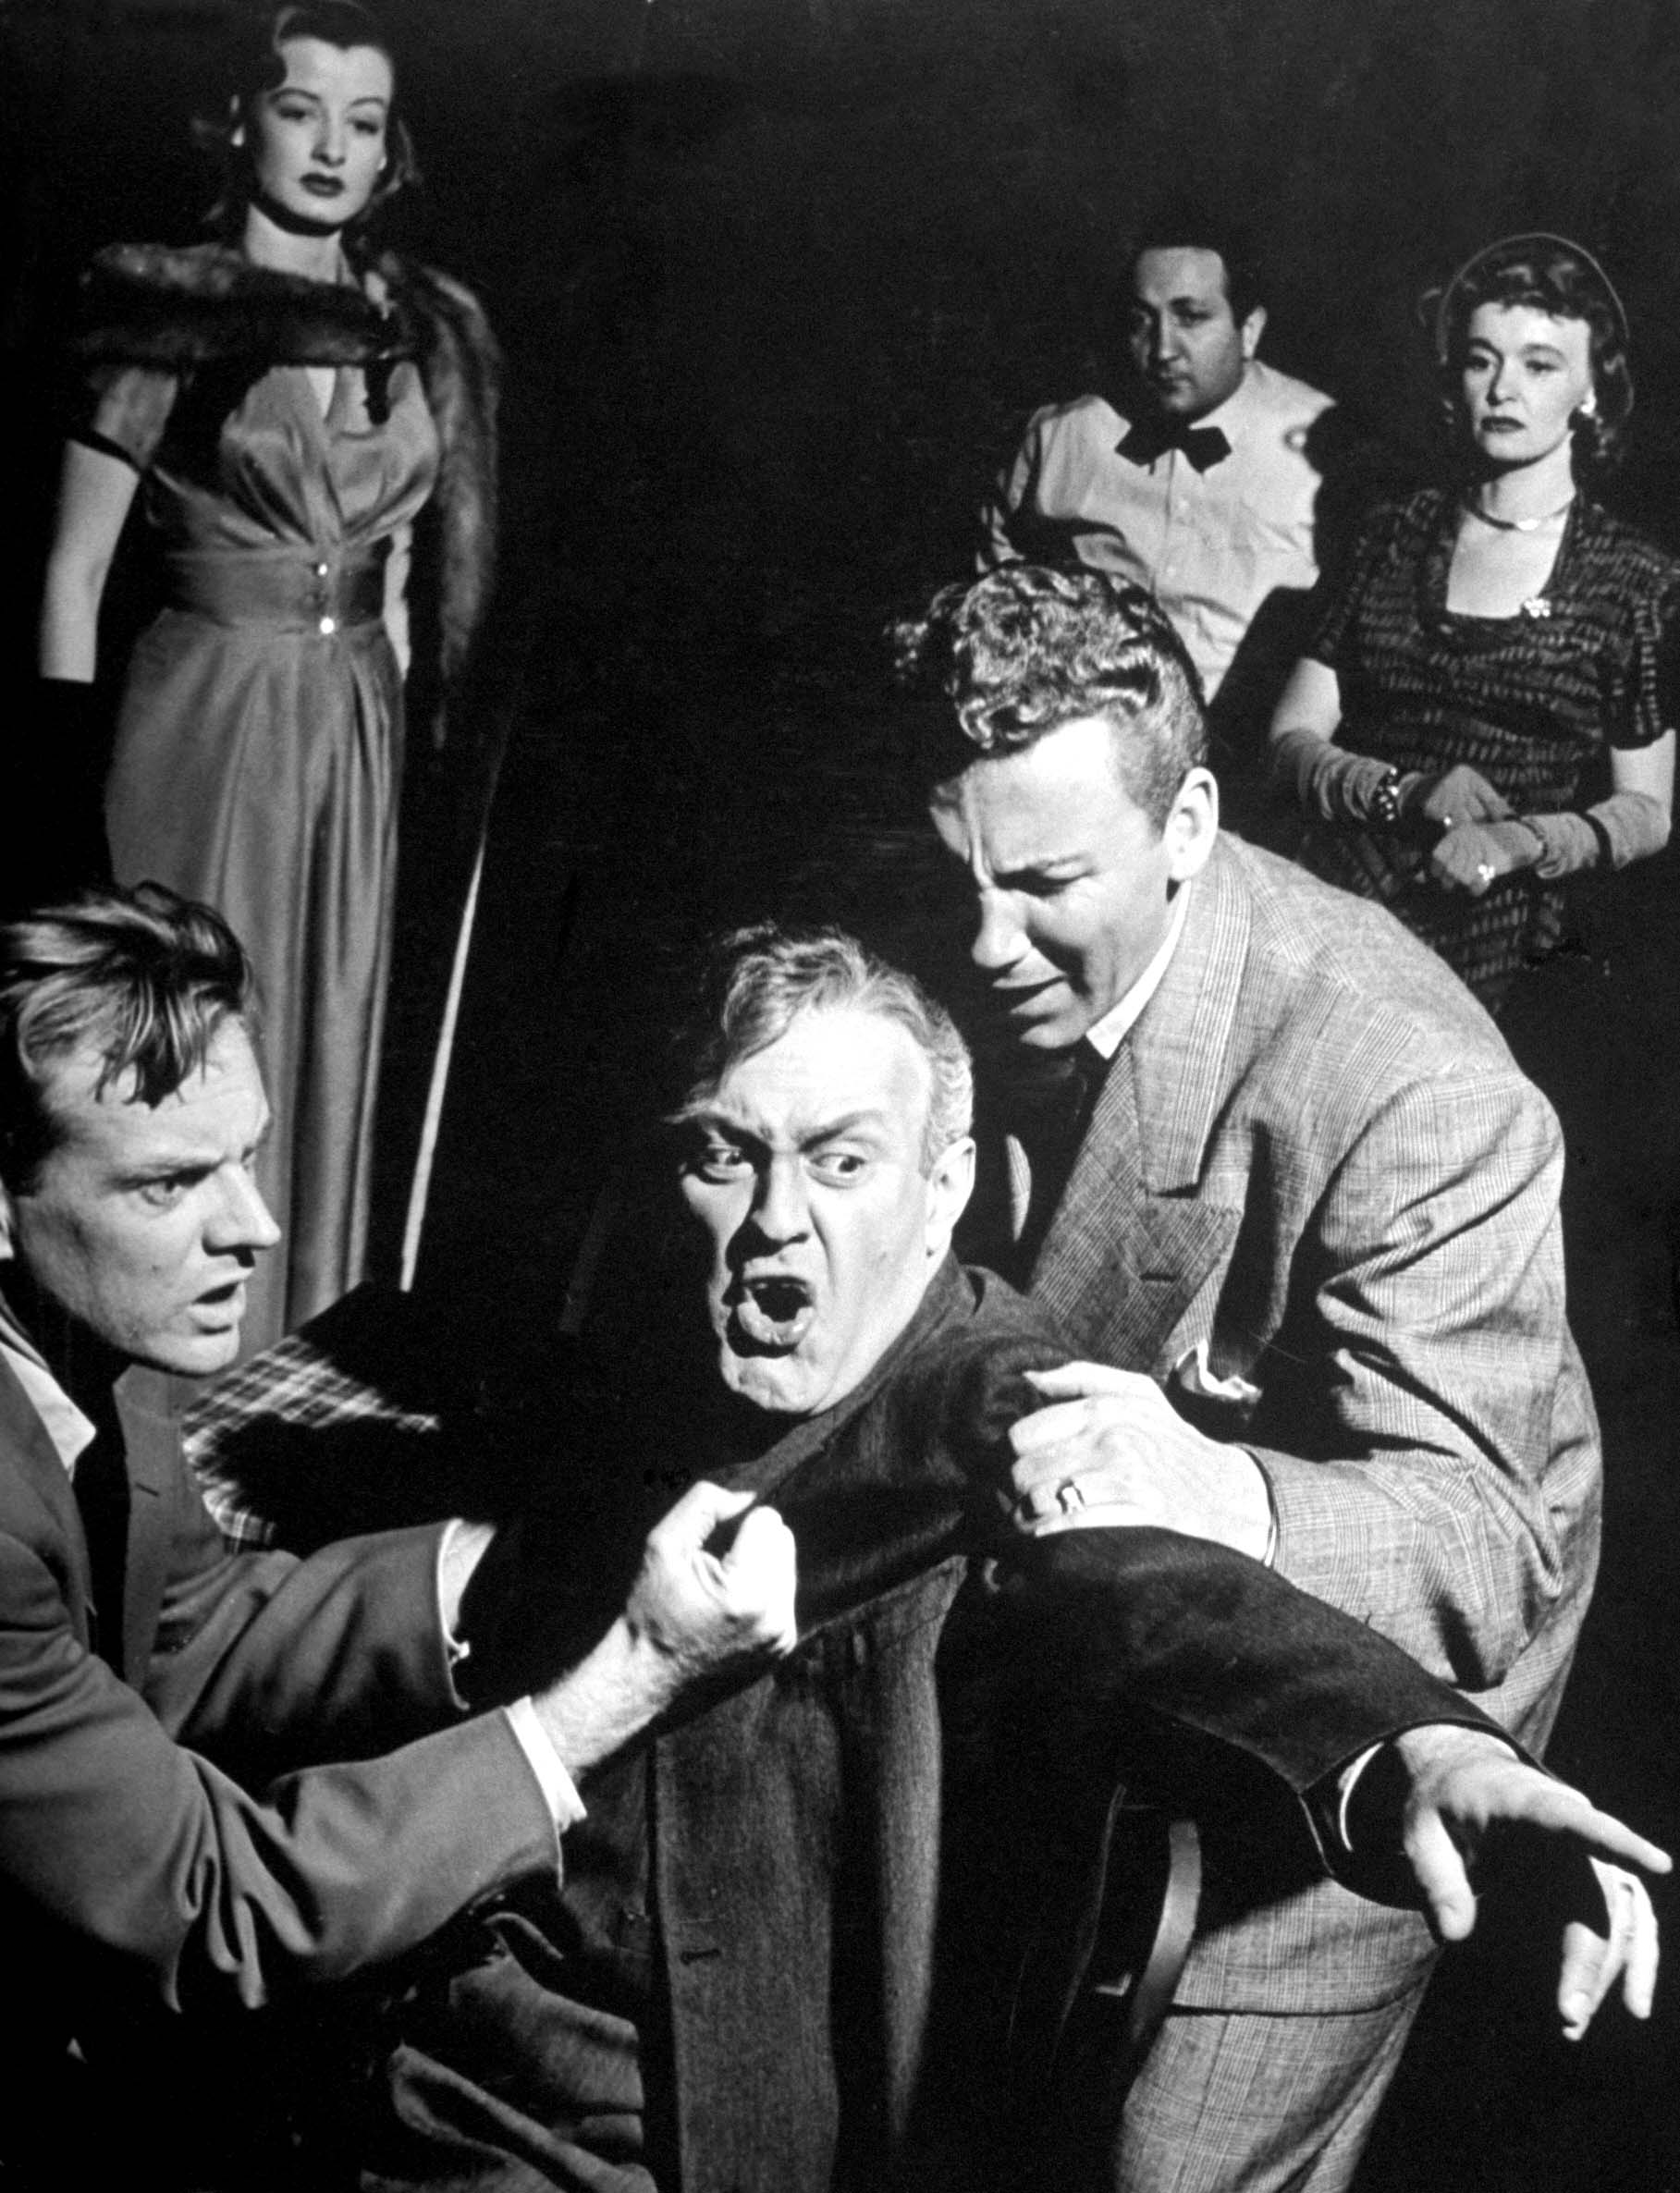 Actor Lee J. Cobb plays Willy Loman being restrained while babbling at imaginary characters in the Broadway production of  Death of a Salesman  in 1949. The play made Arthur Miller famous, and turned Willy Loman into a shorthand phrase for a deluded loser who dreams of success beyond himself.